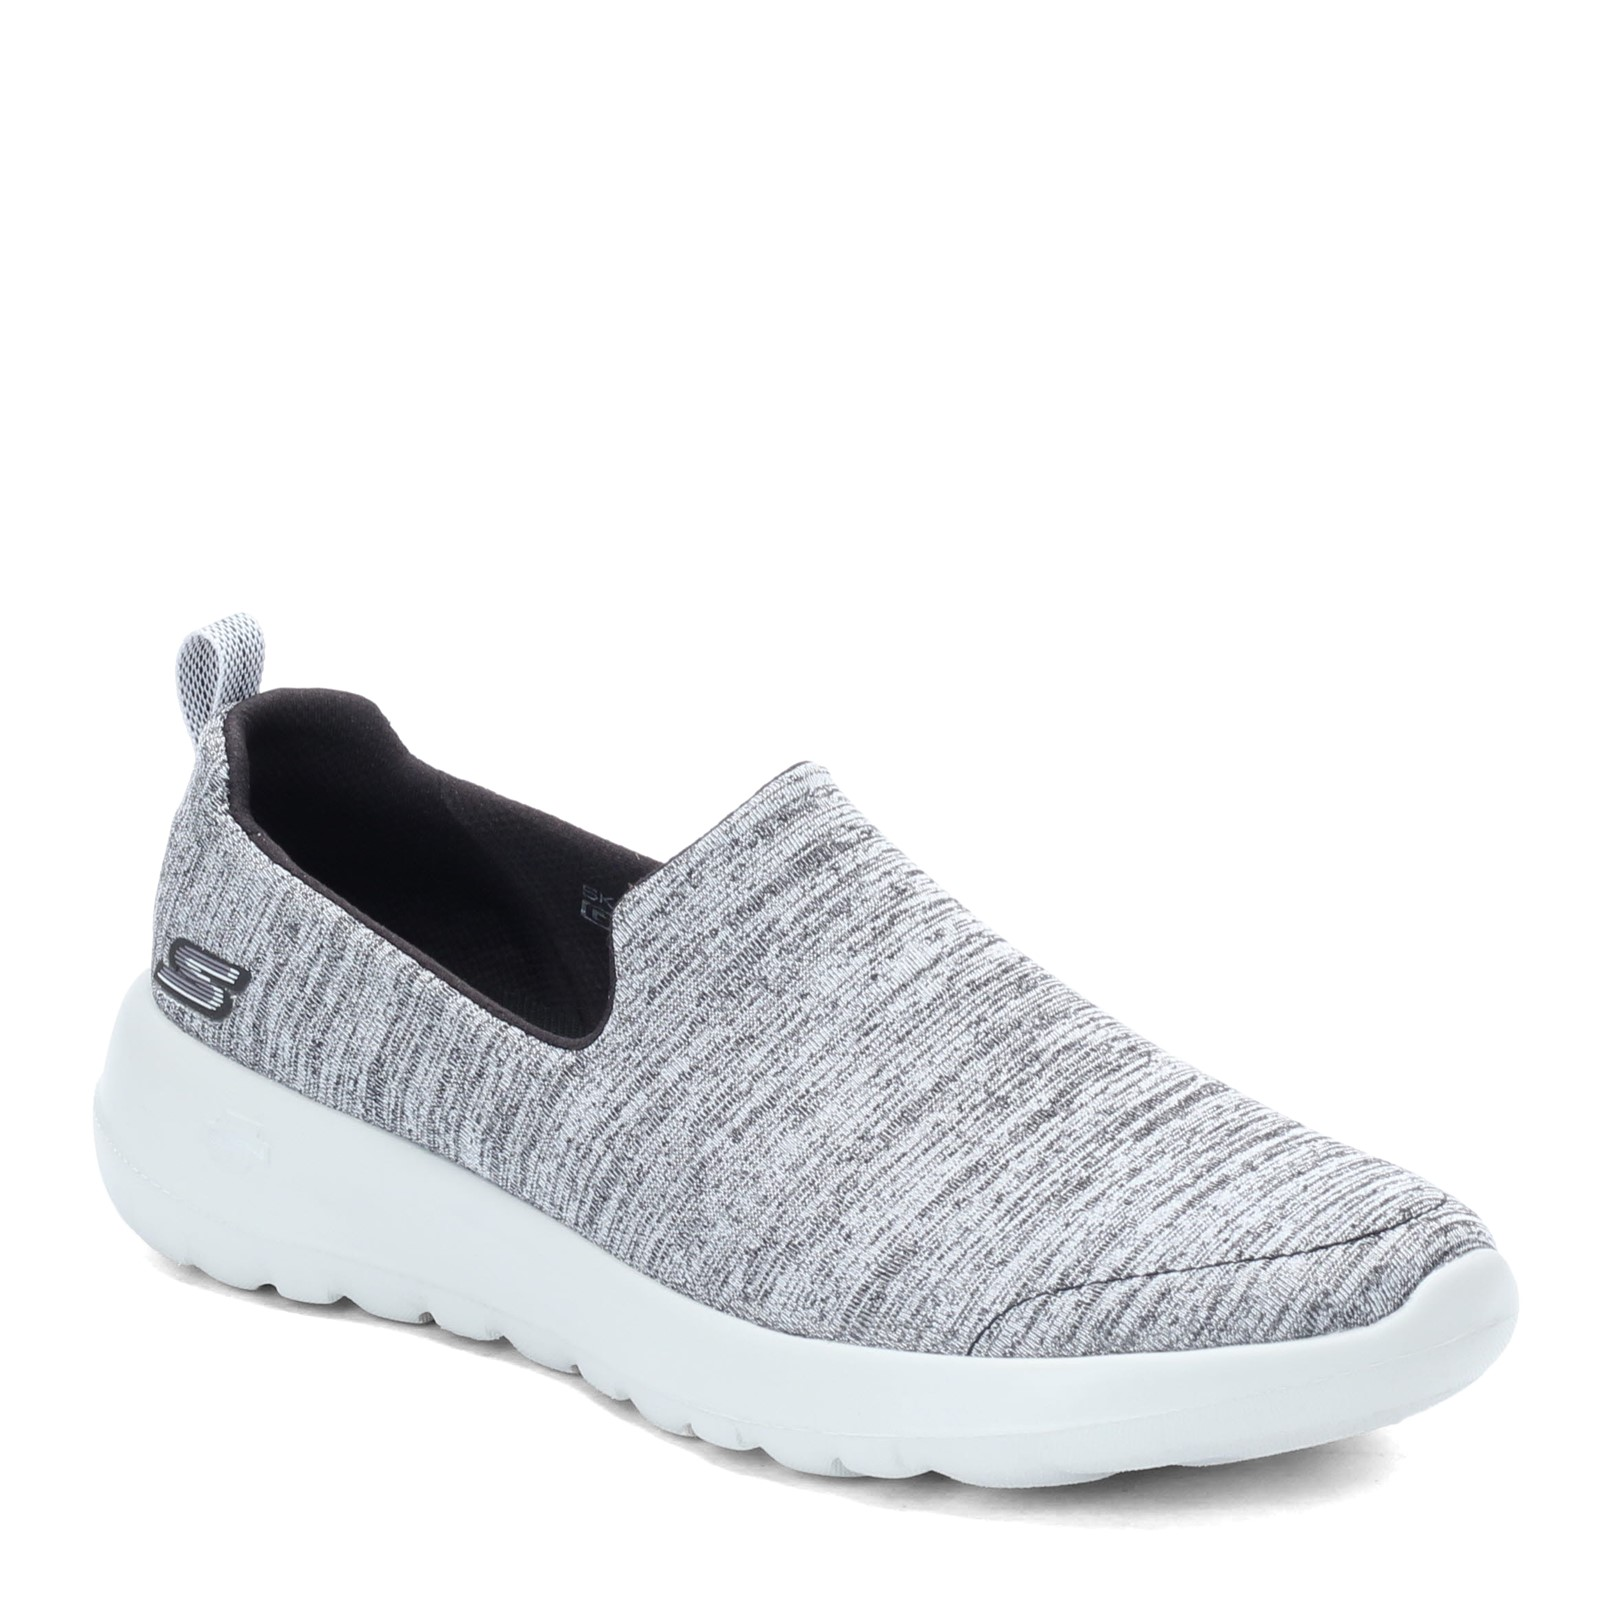 Women's Skechers Performance, GOwalk Joy - Enchant Slip On - Wide Width